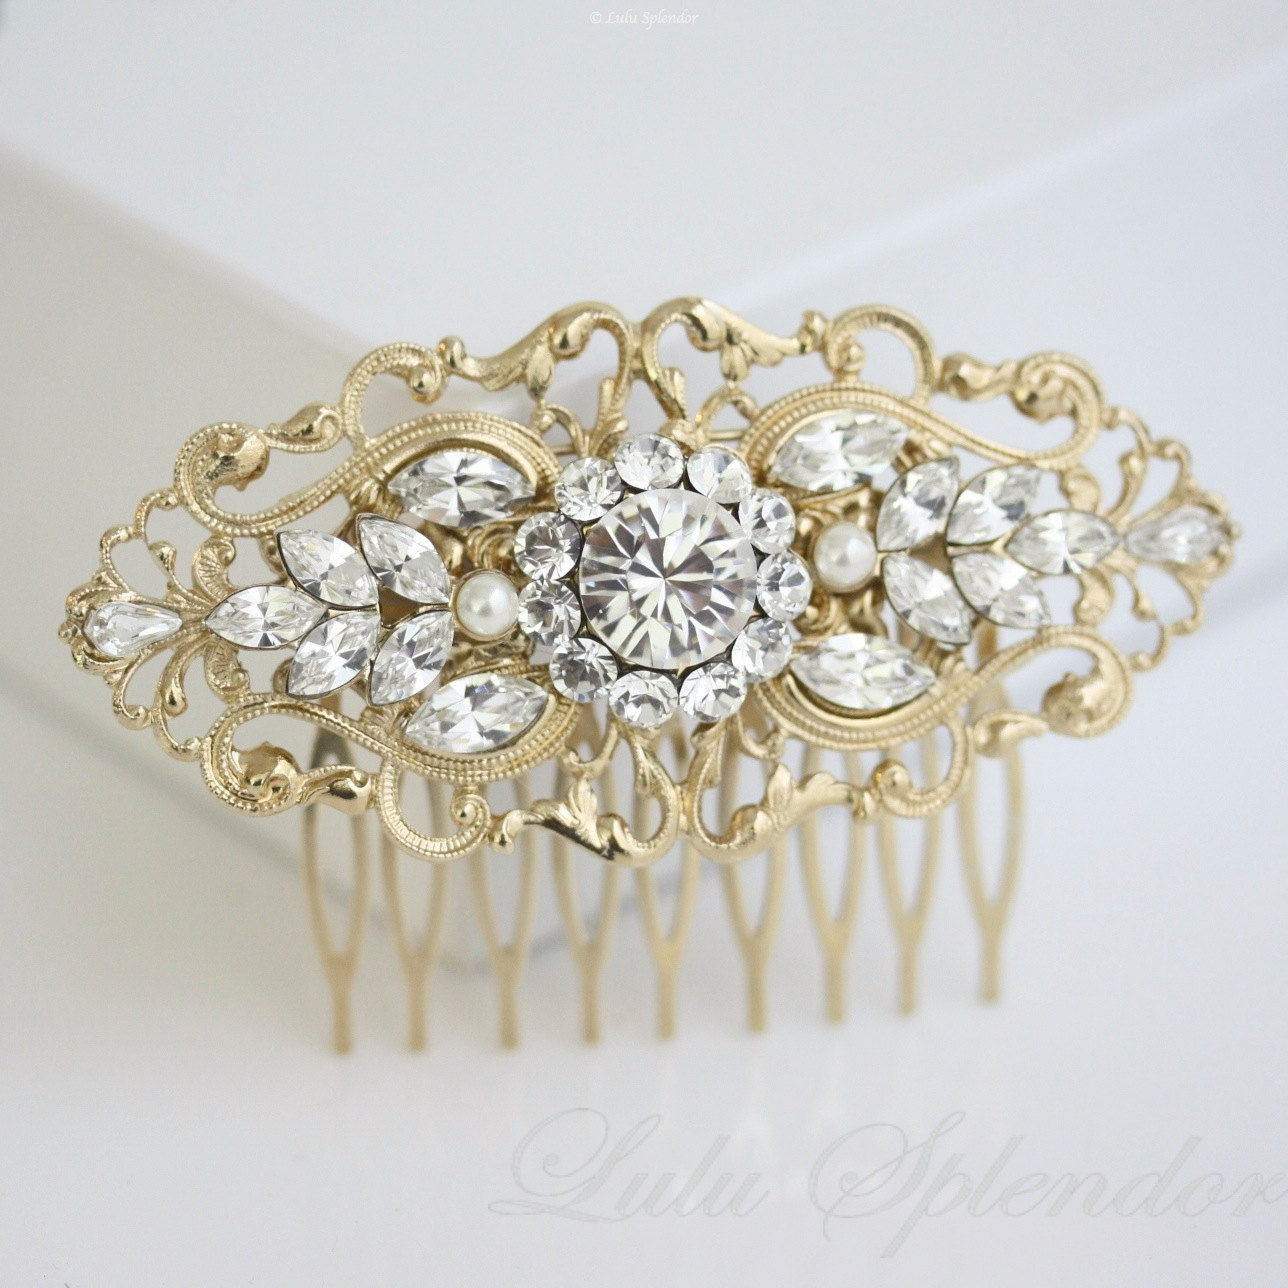 gold bridal comb art deco wedding hair accessories vintage